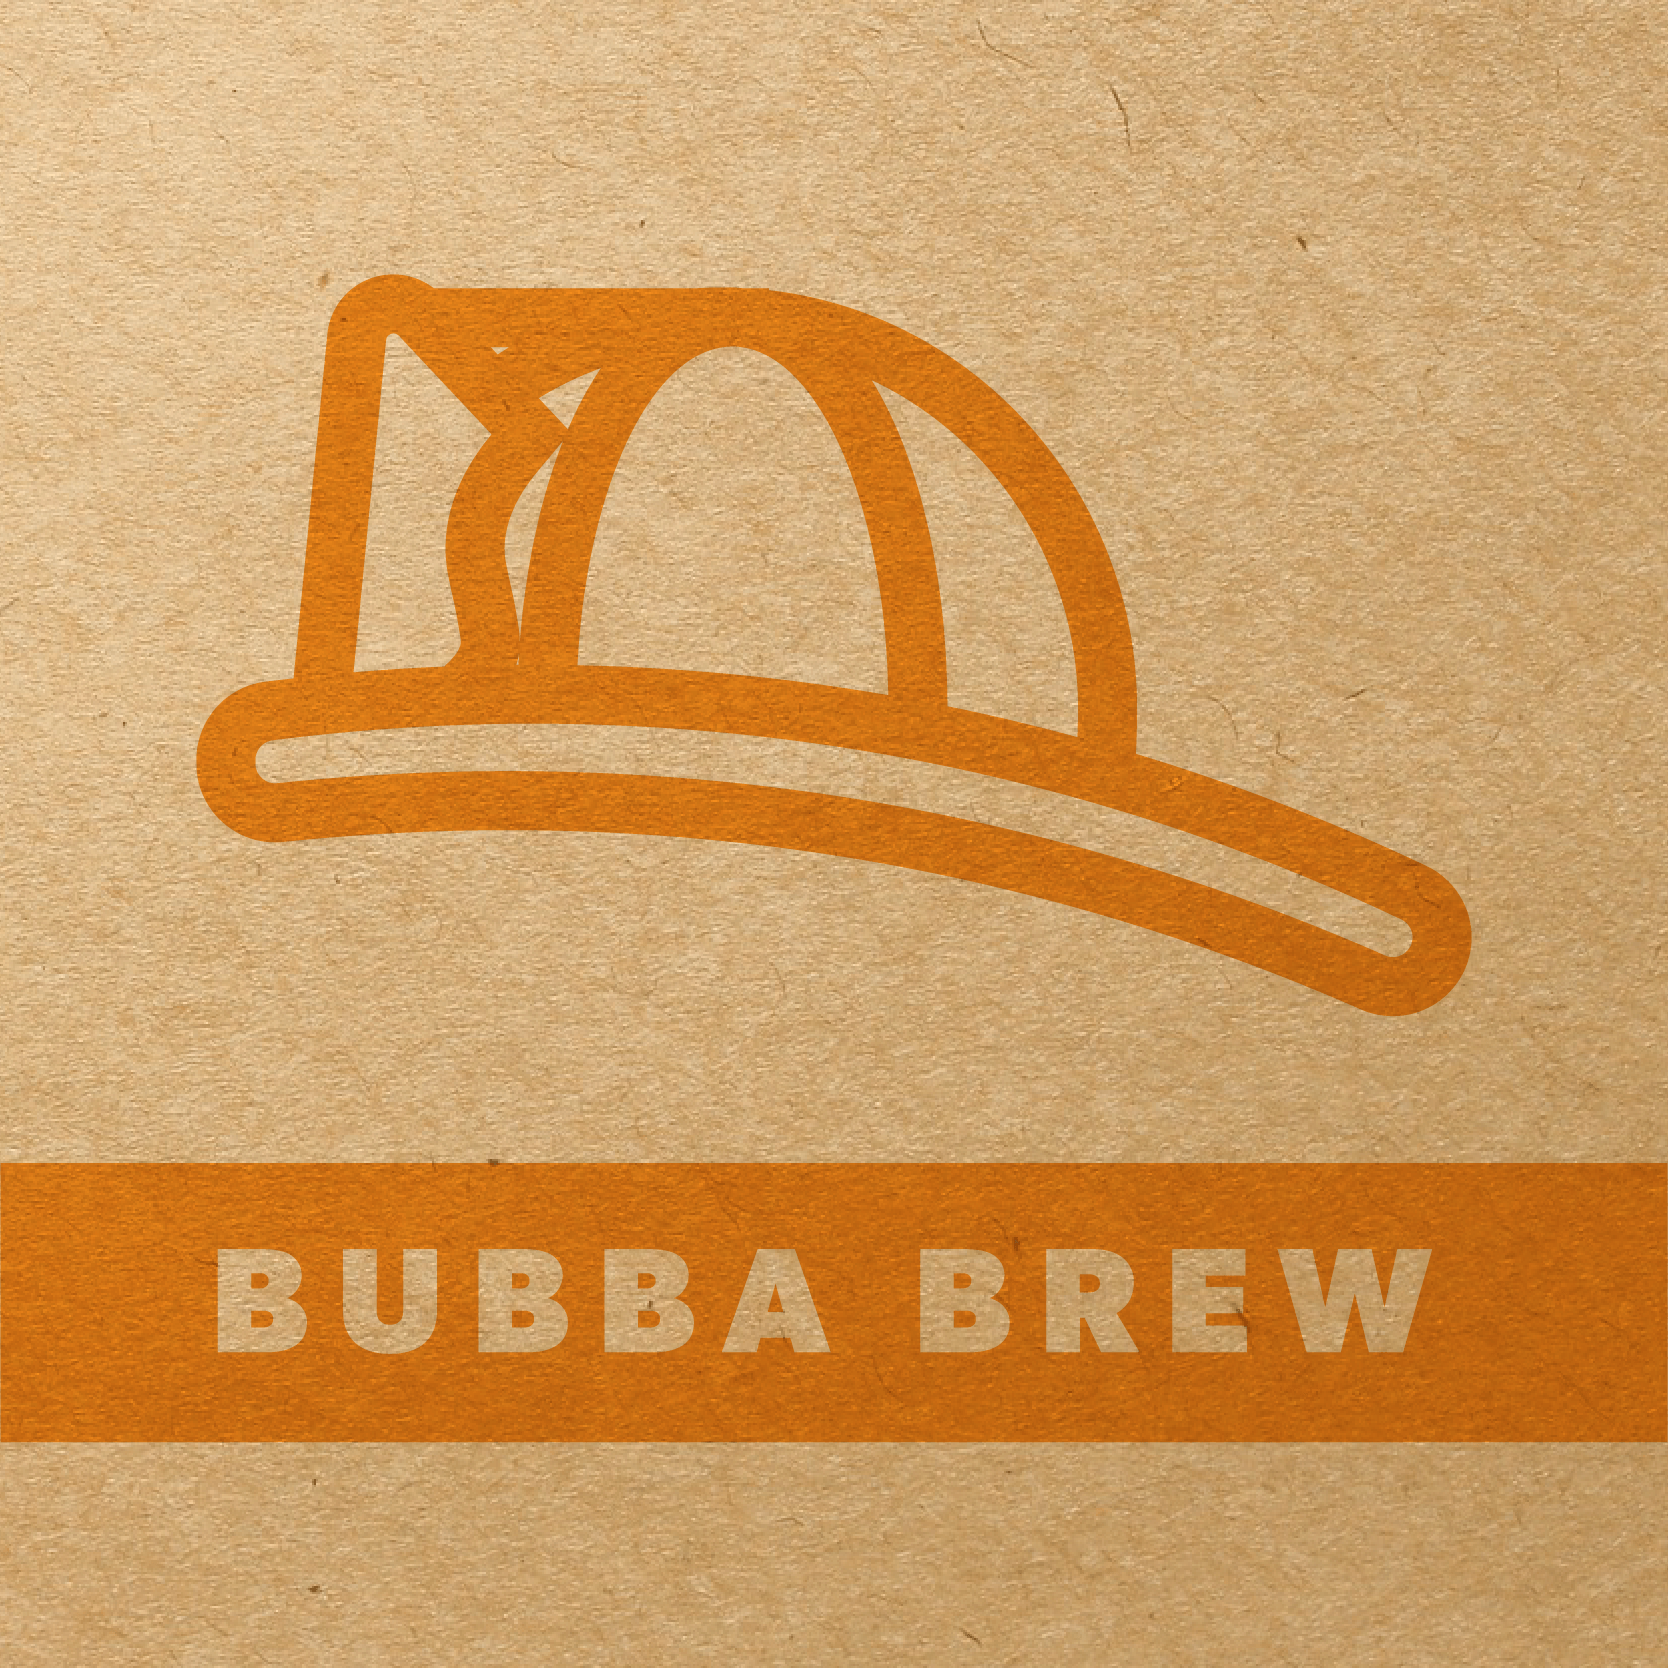 Bubba Brew from Fire Grounds Coffee